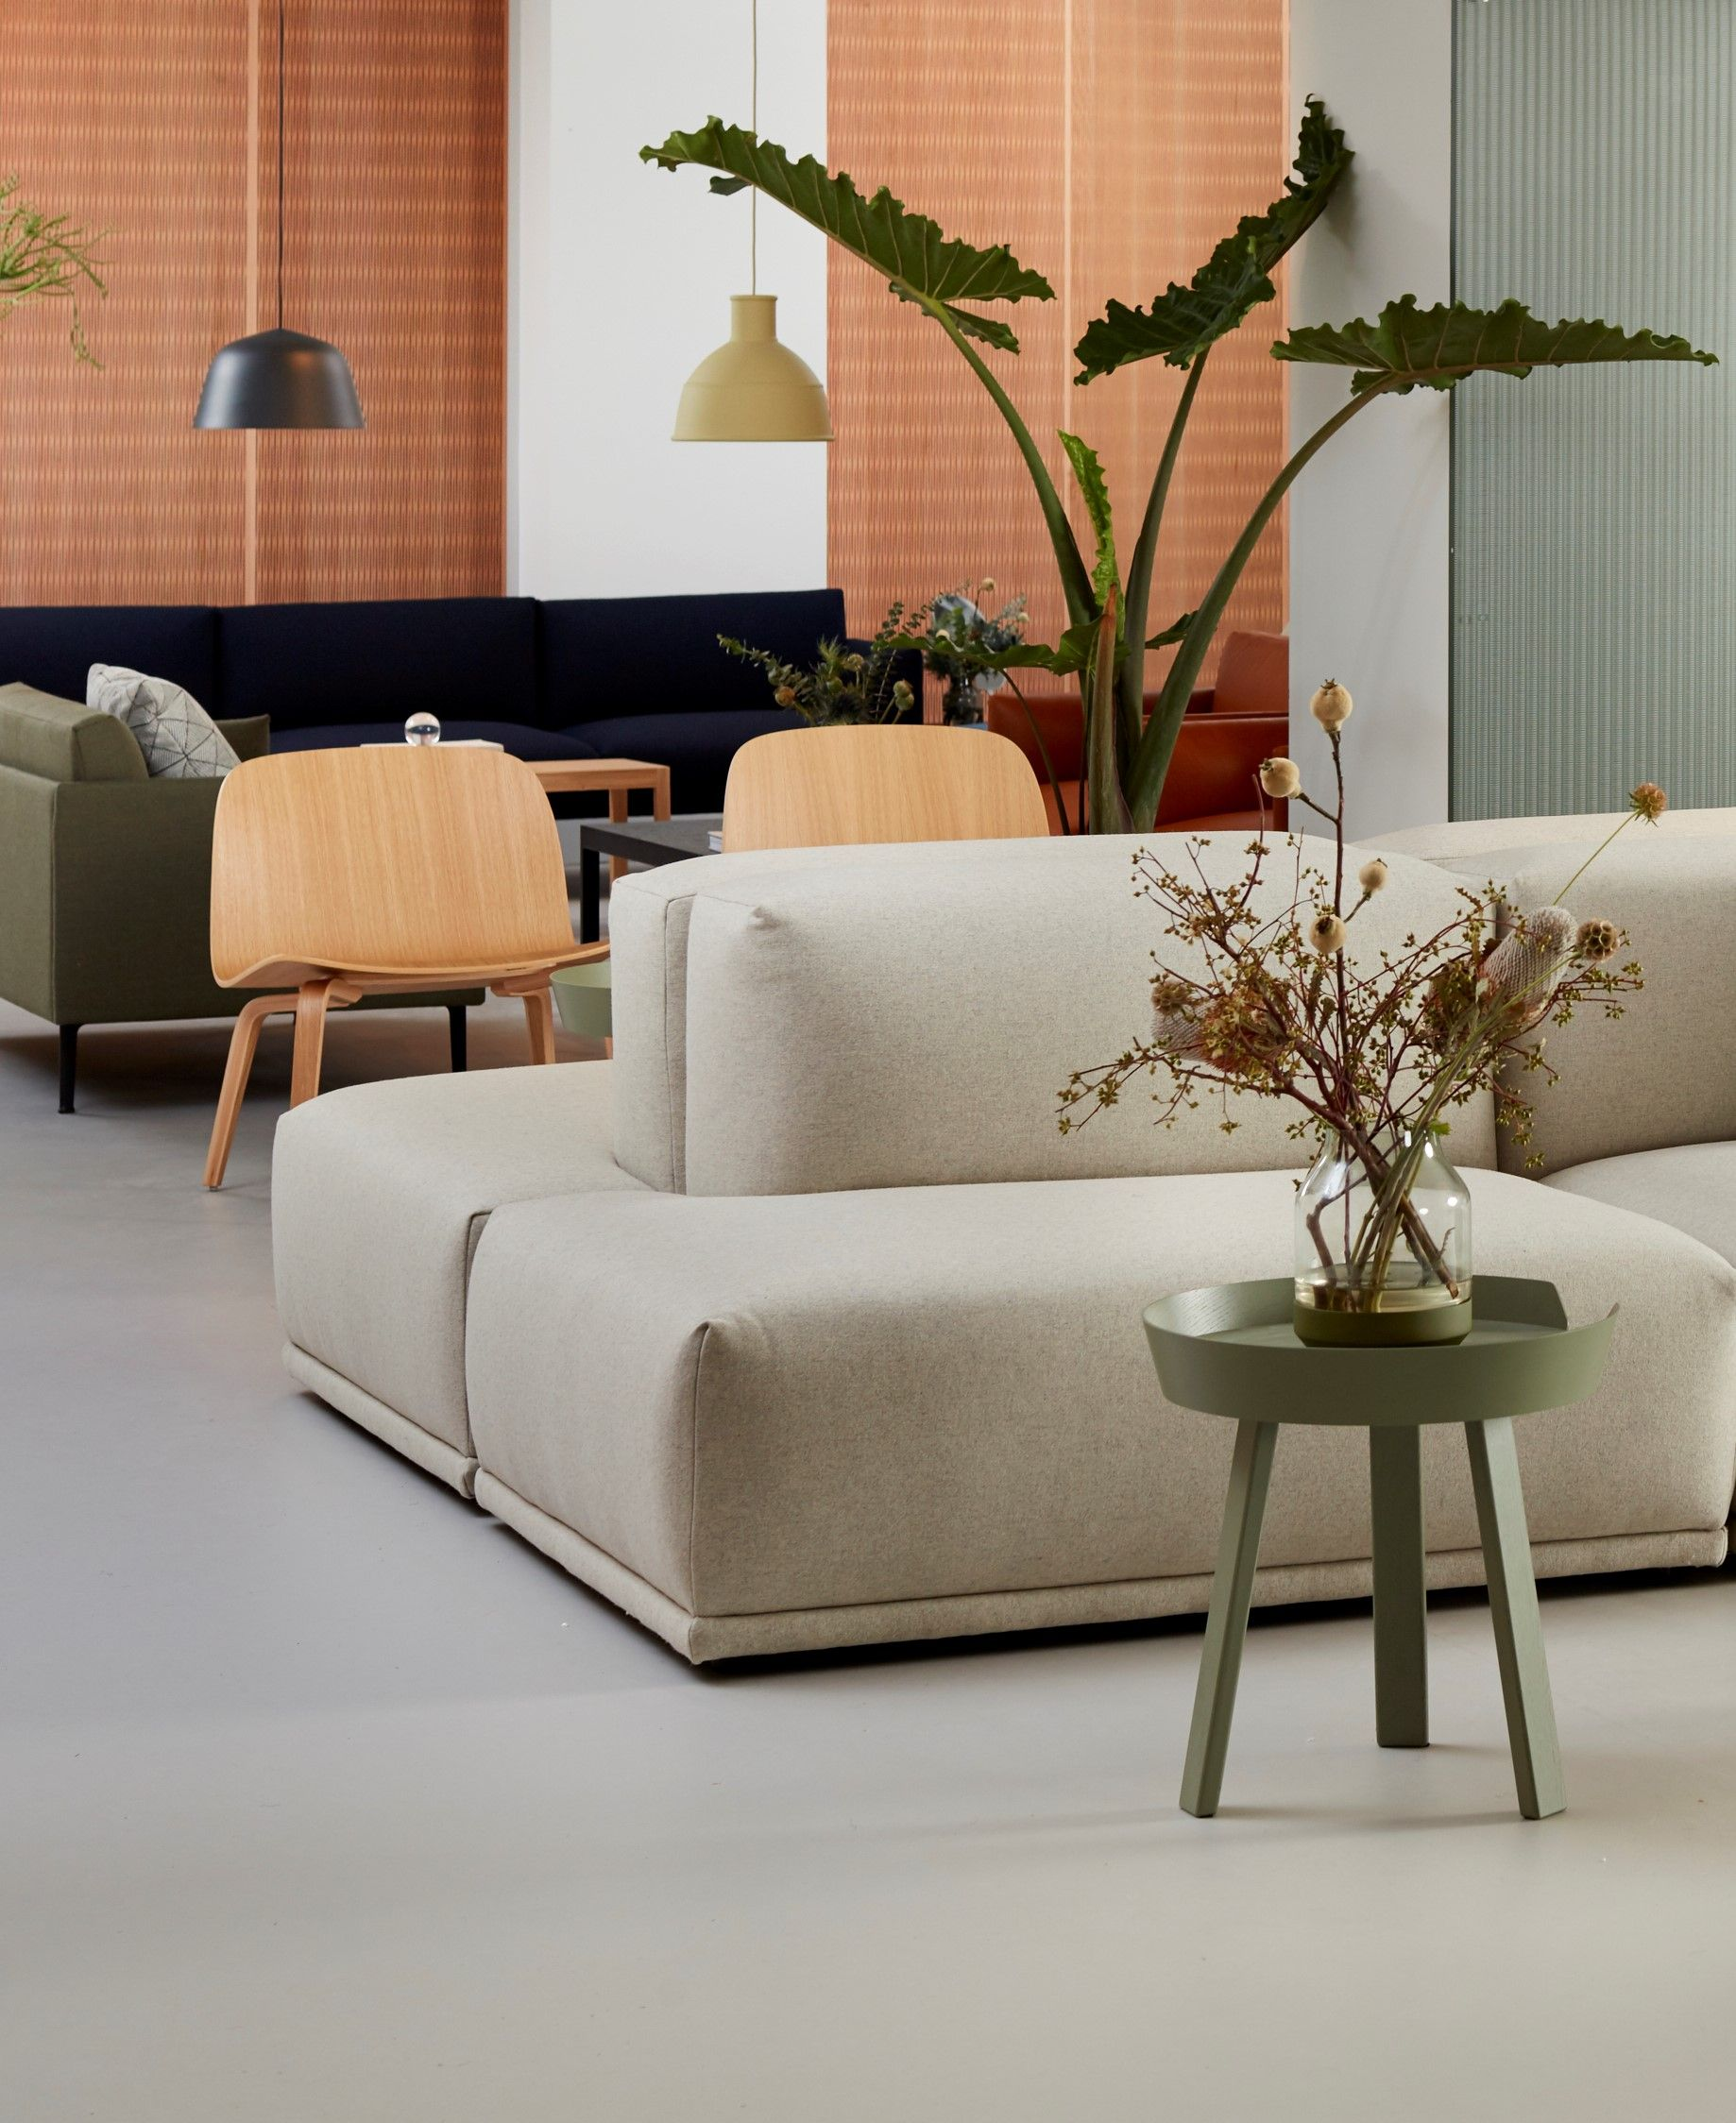 The Connect Modular Sofa System